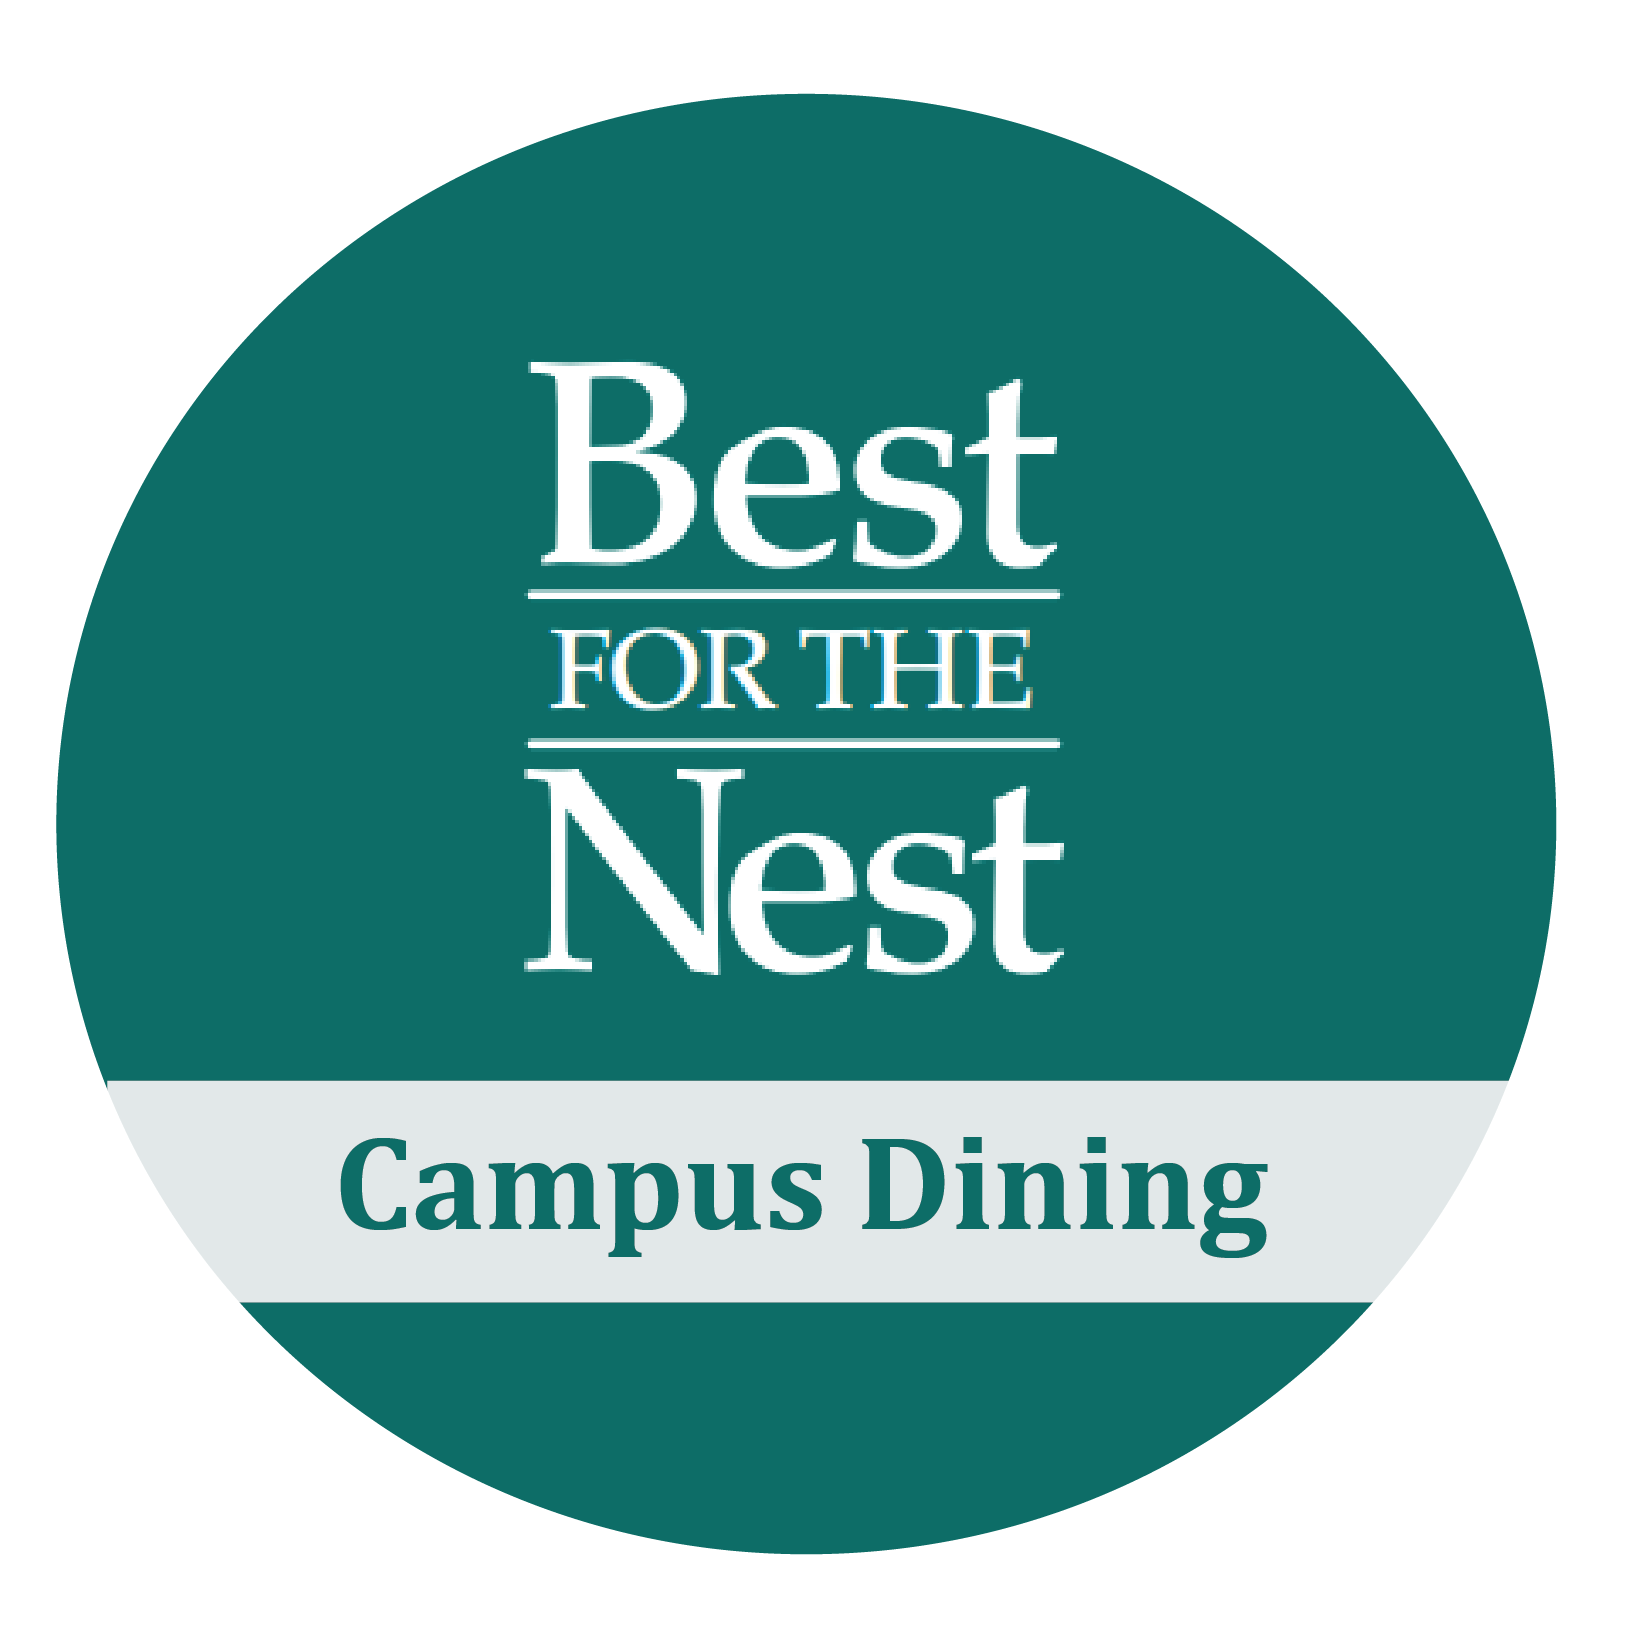 Best for the Nest Campus Dining Icon